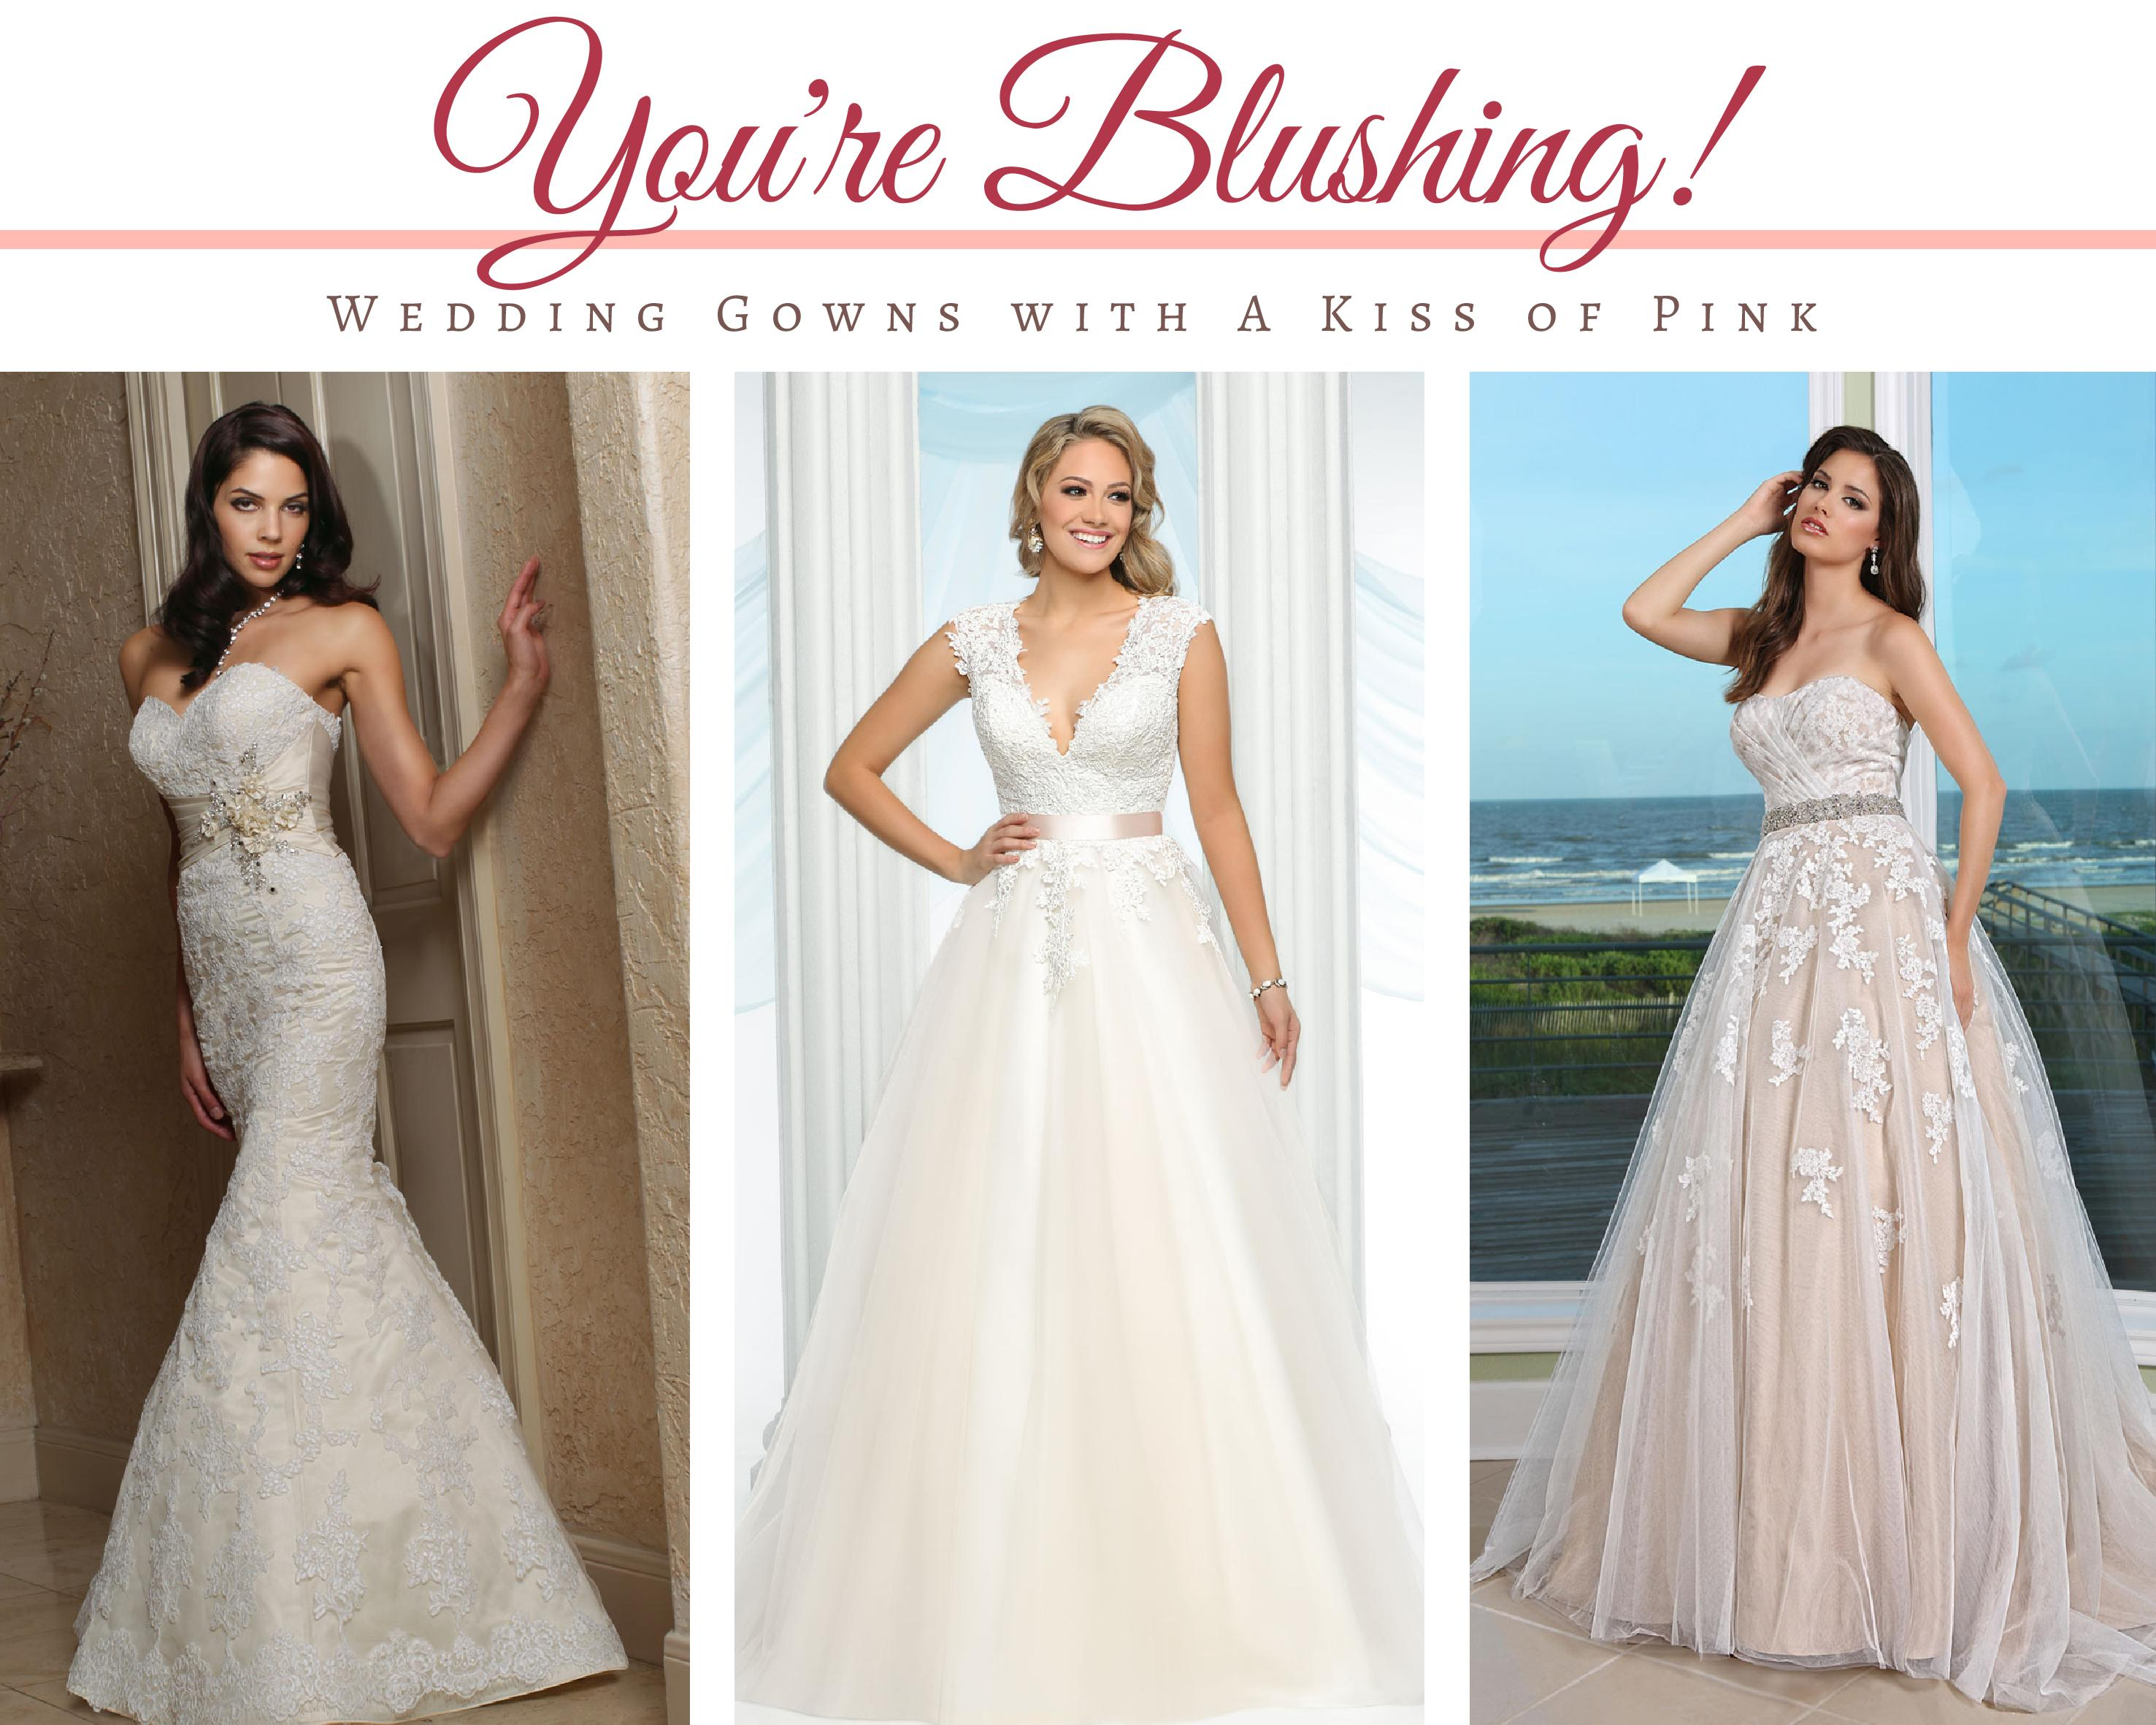 Wedding Gowns with a Kiss of Pink